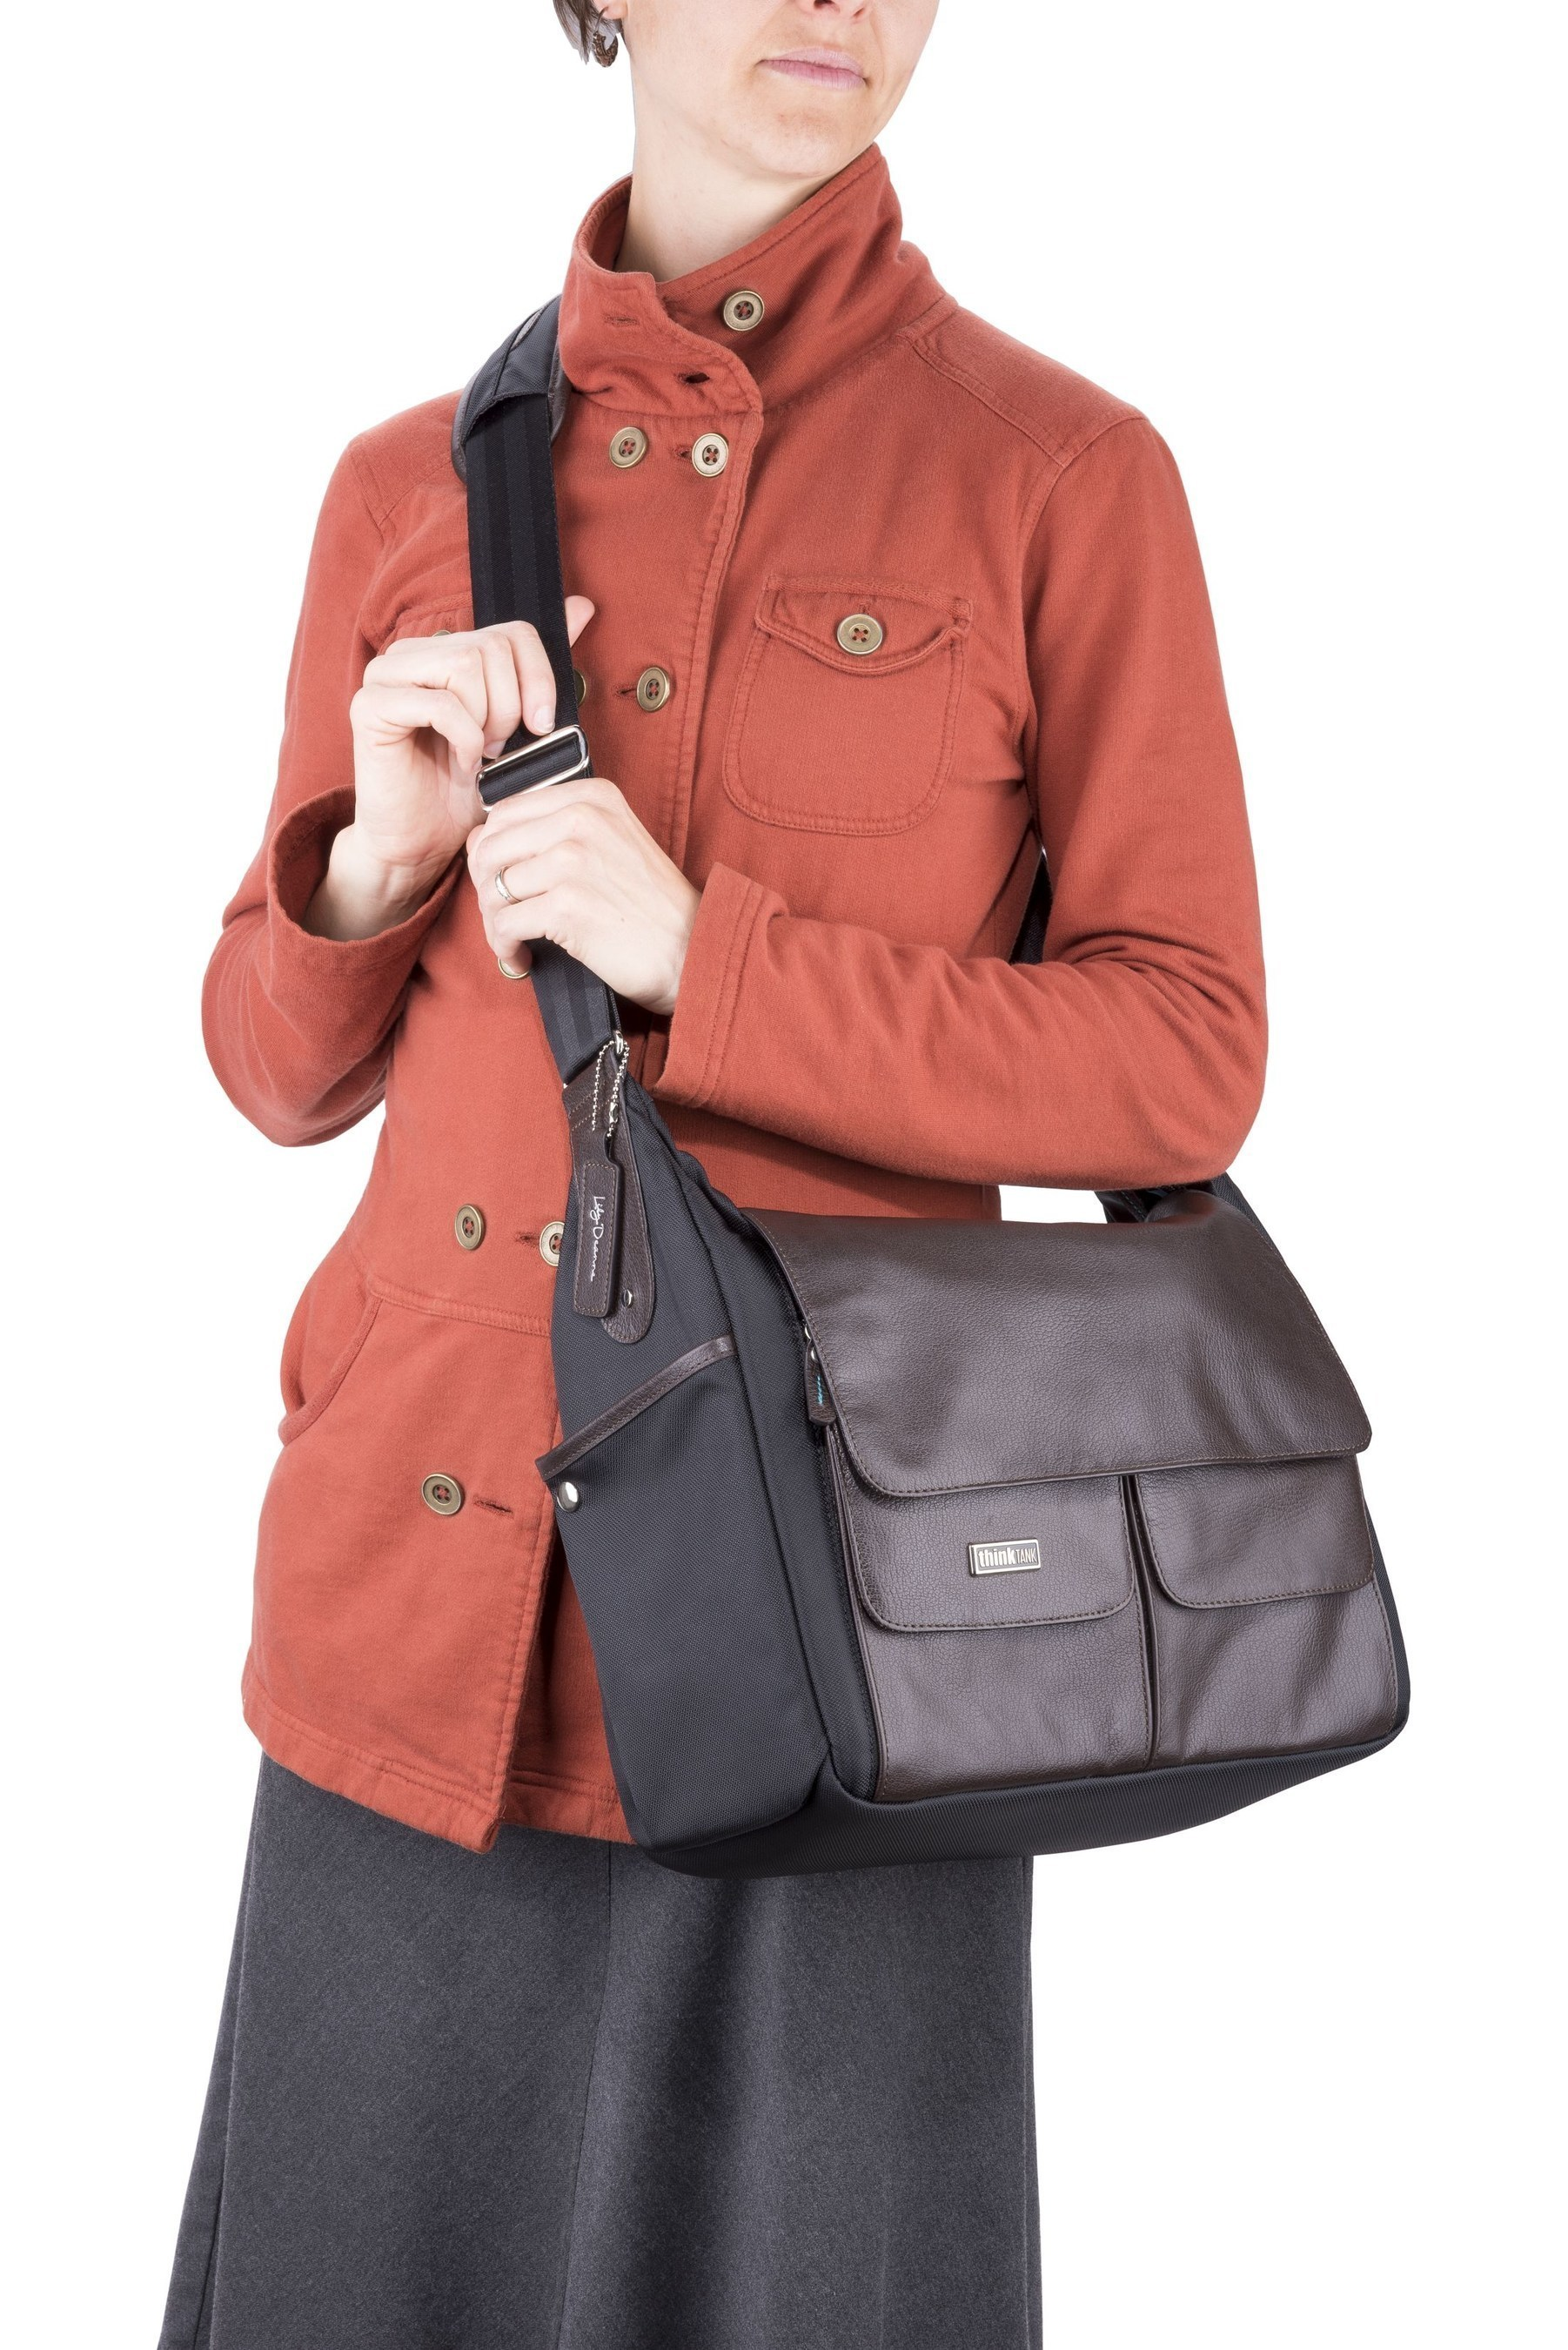 Function Meets Style with Think Tank Photo's New Lily Deanne Women's Camera Bags